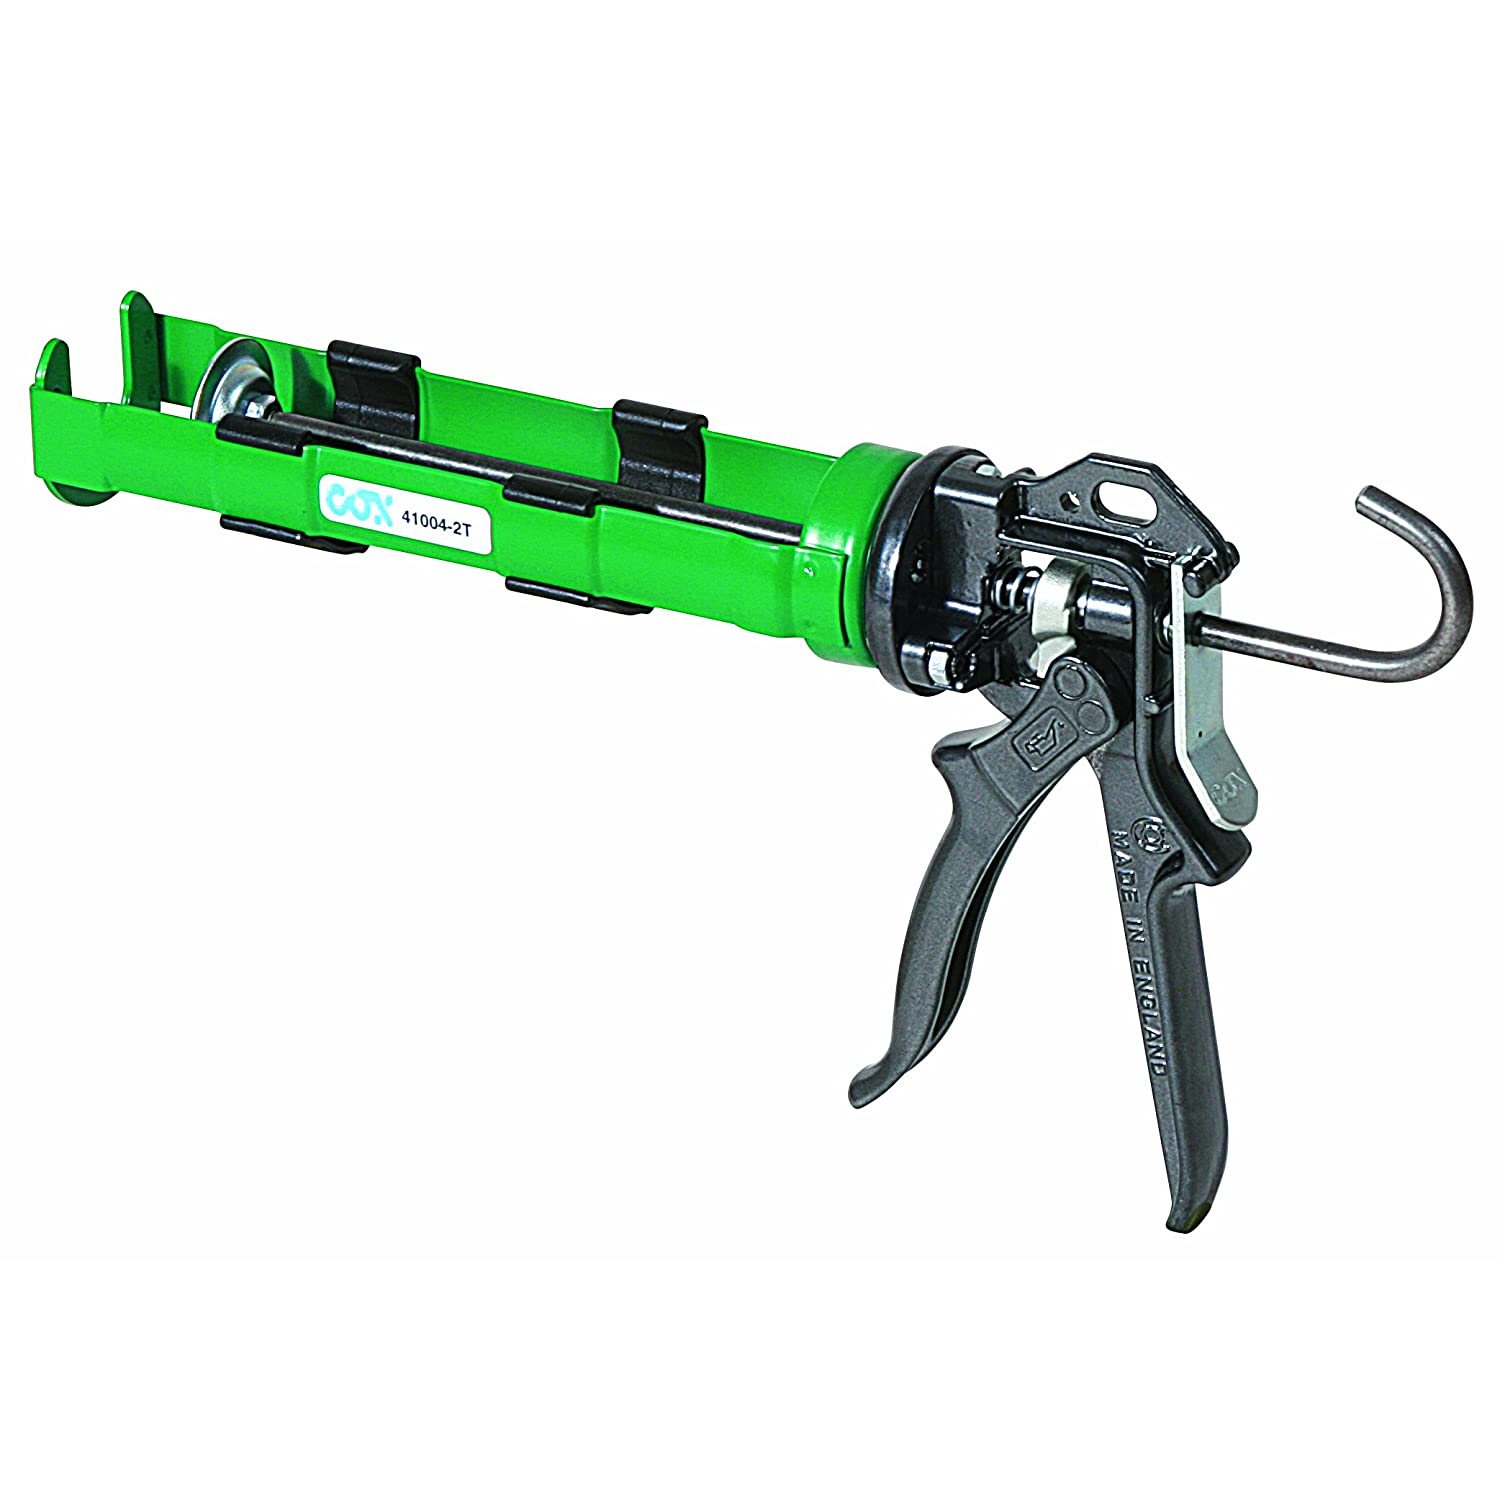 COX 41004-2T Caulk Gun